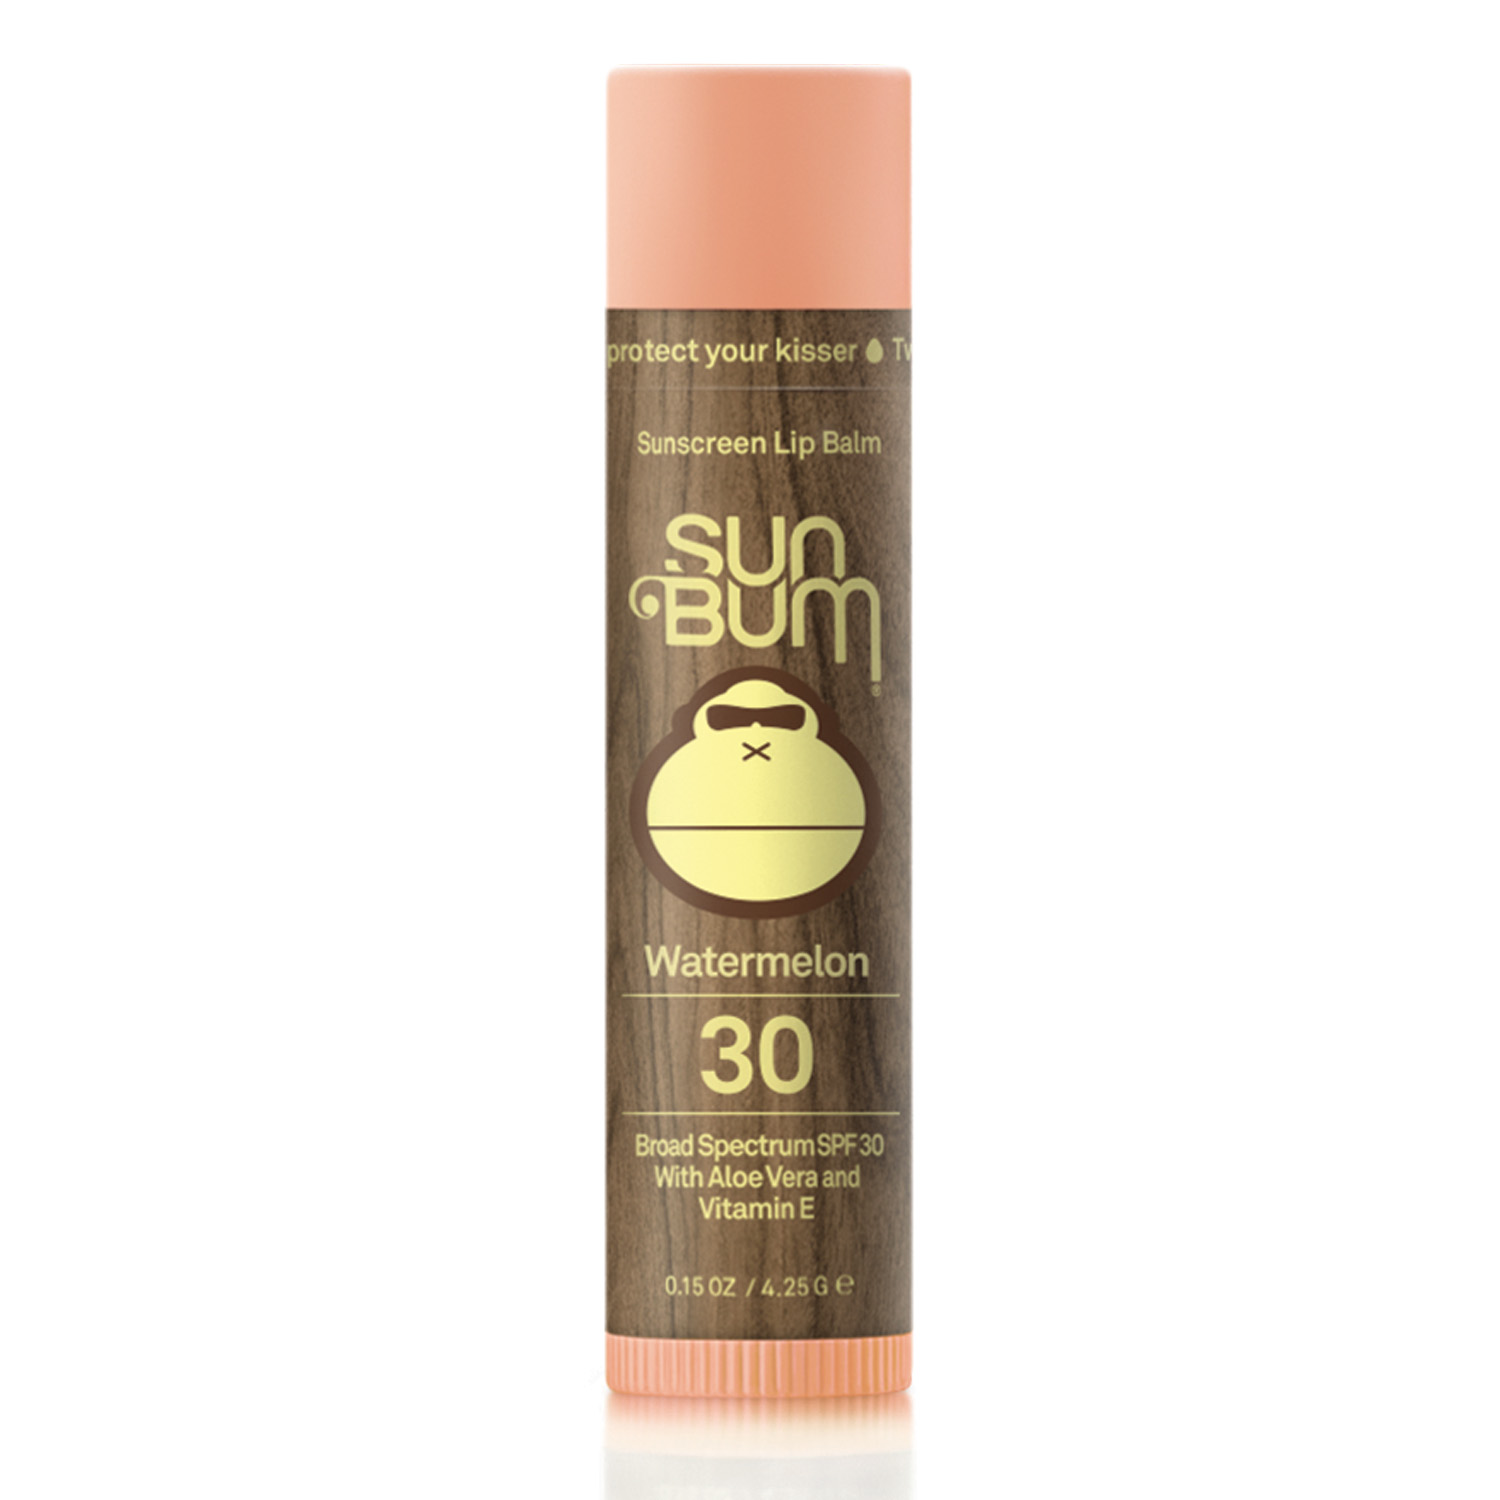 Sun Bum Sunscreen Lip Balm Watermelon 30 Broad Spectrum SPF 30 (0.15 oz / 4.25 g)